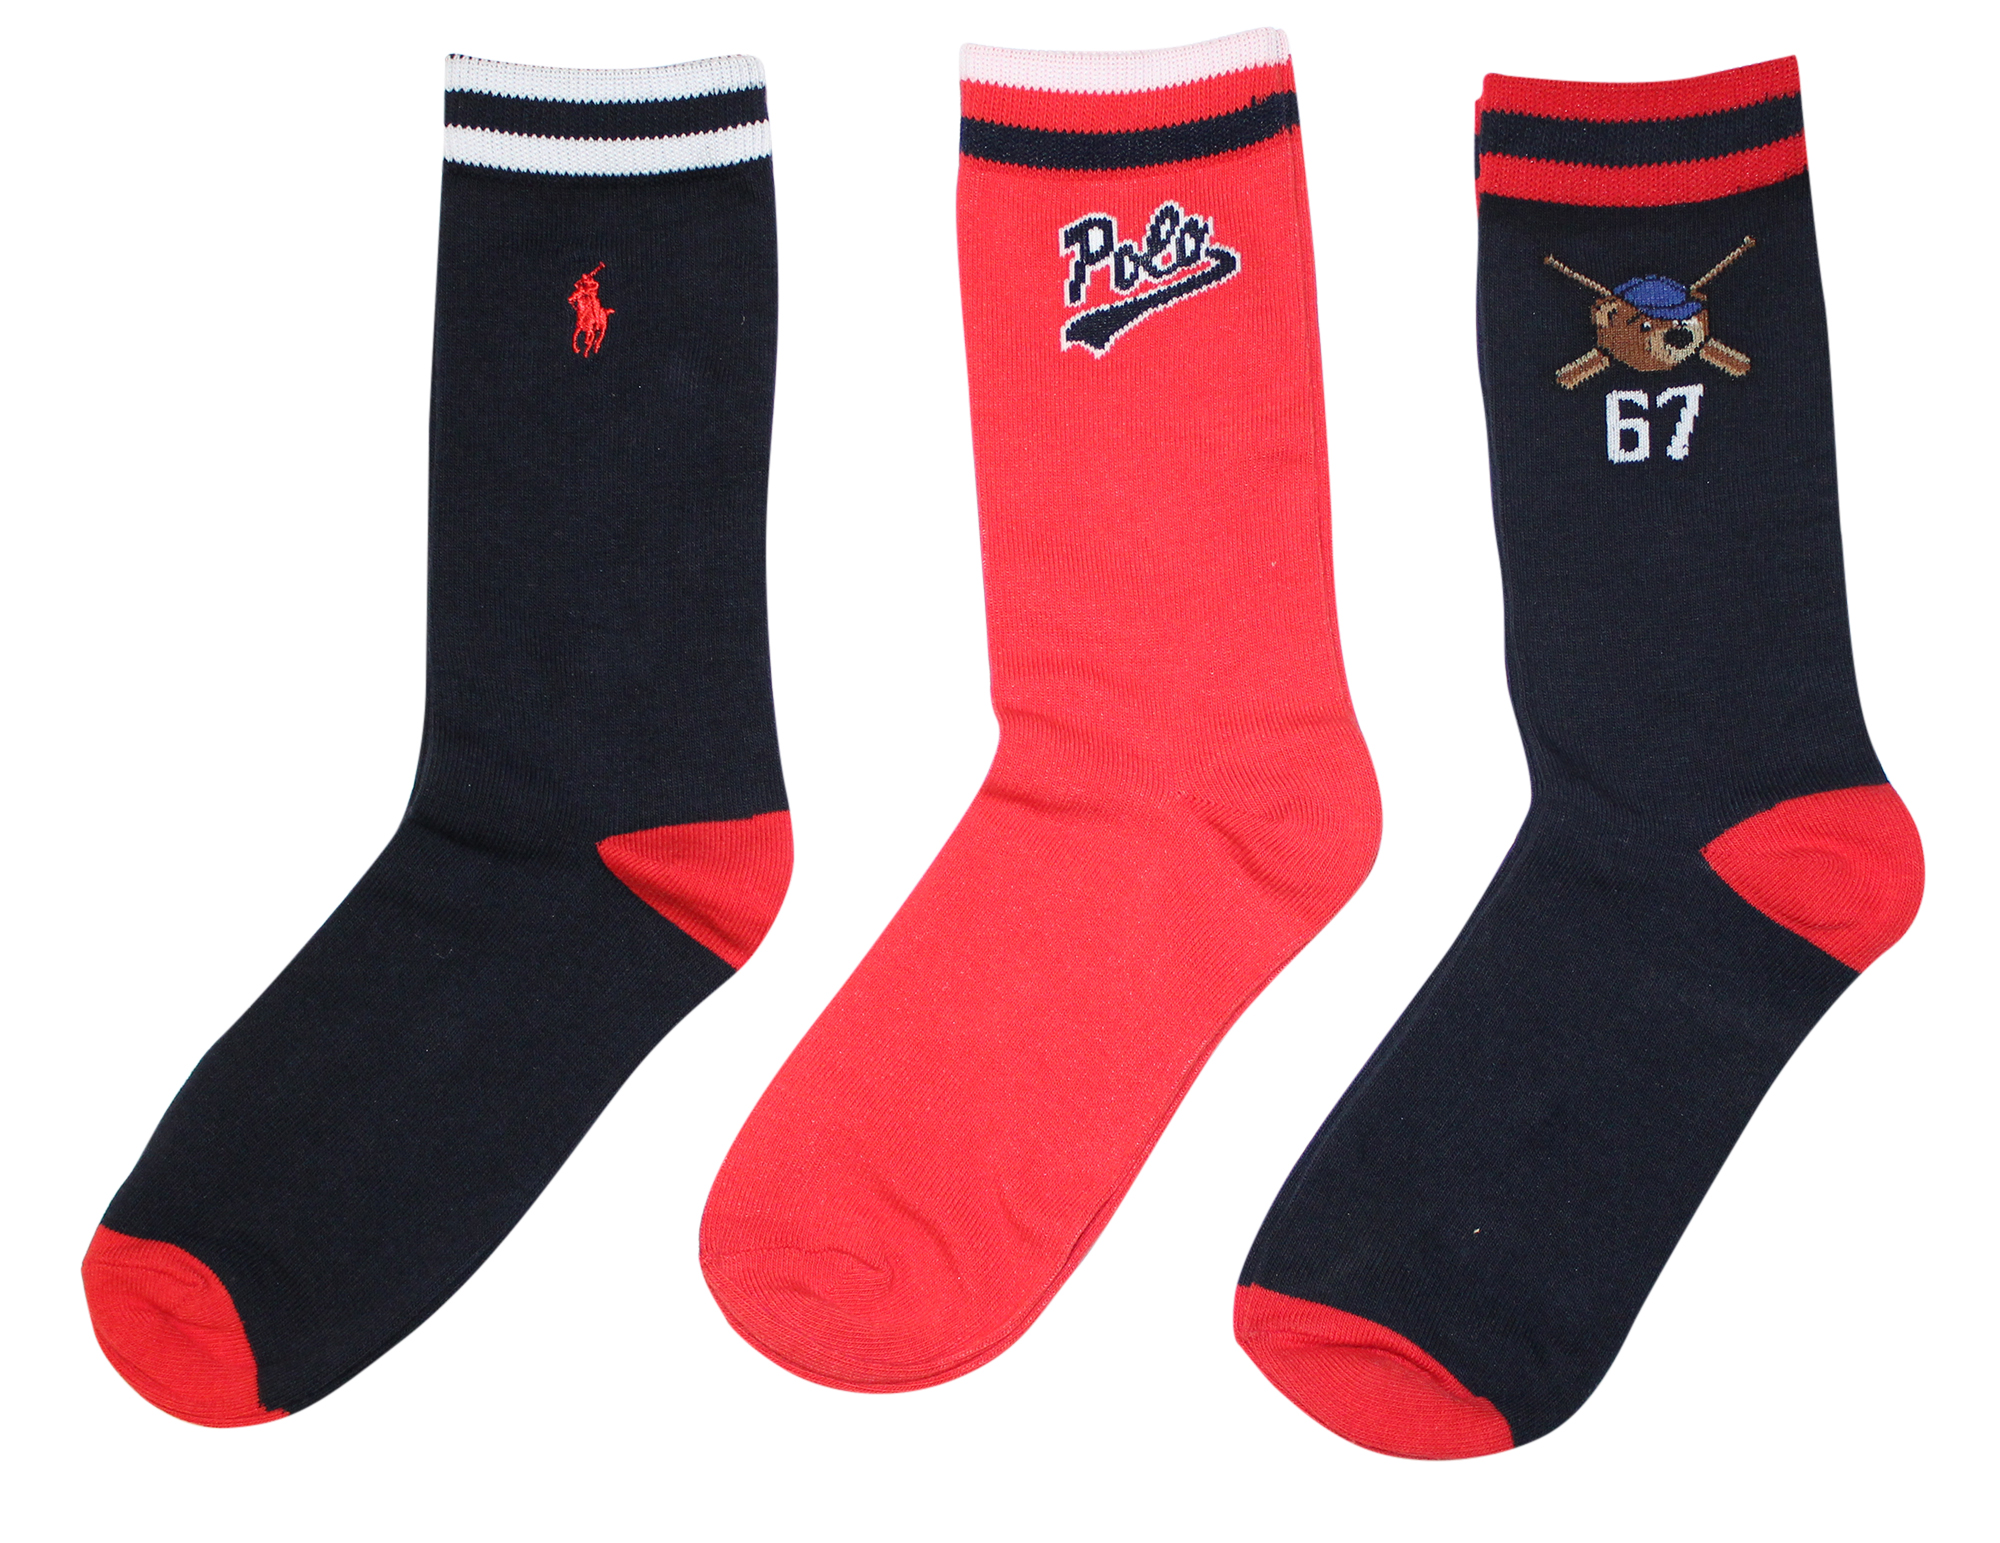 7383a78fd5 Details about Polo Kids Socks for Boys 3-Pack Crew Dress Sock with Polo  Design 2-12 Years